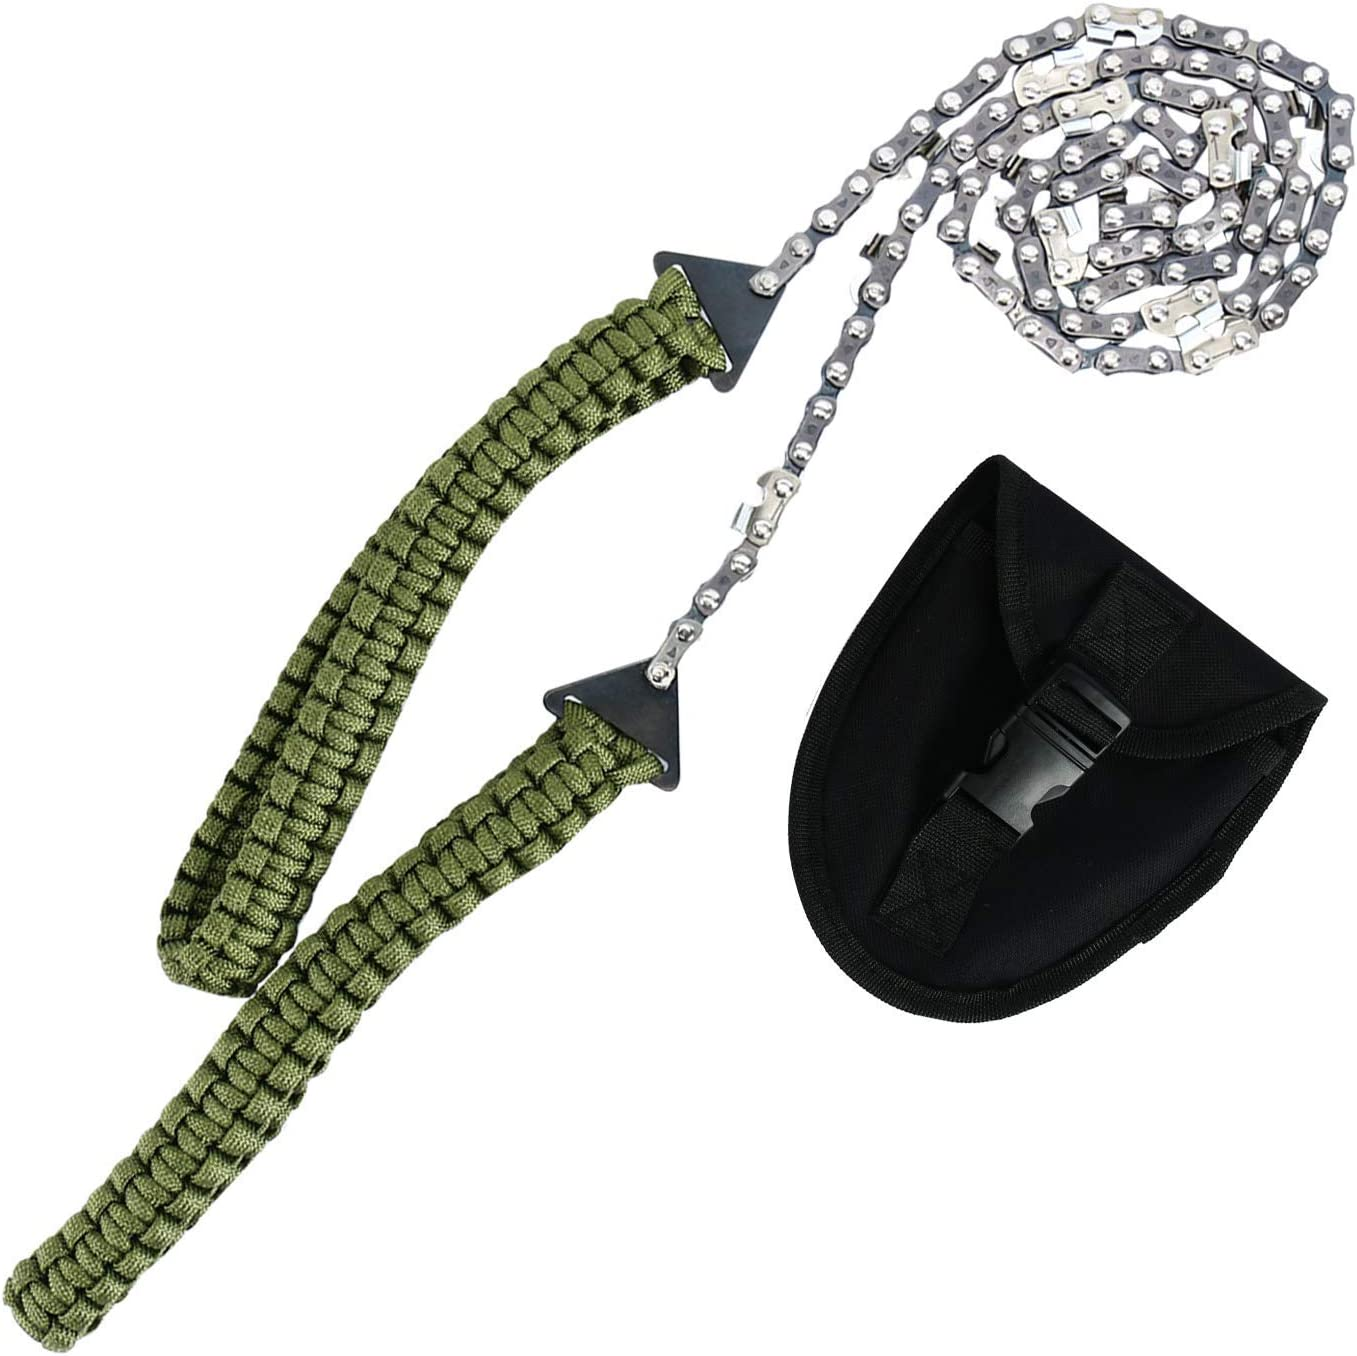 Camping Hiking Emergency Survival Hand Tool Gear Pocket Chain Saw ChainSaw *DC